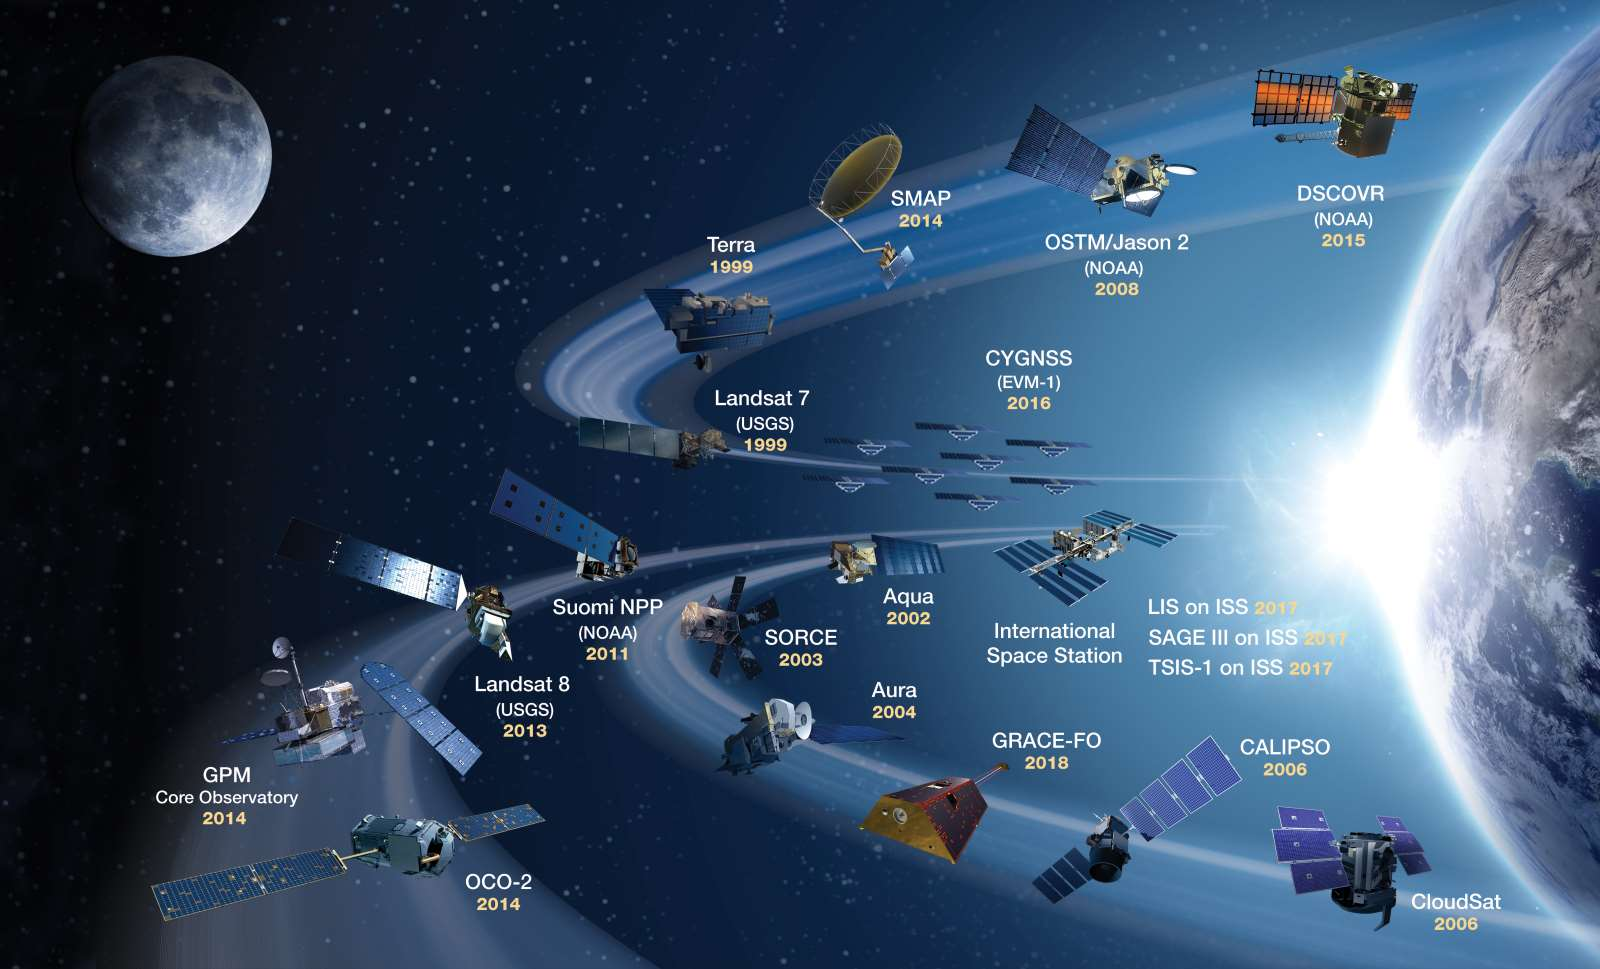 NASA Missions Save Lives on Earth: NASA's current (as of October 2018) Earth-observing satellite fleet with launch dates